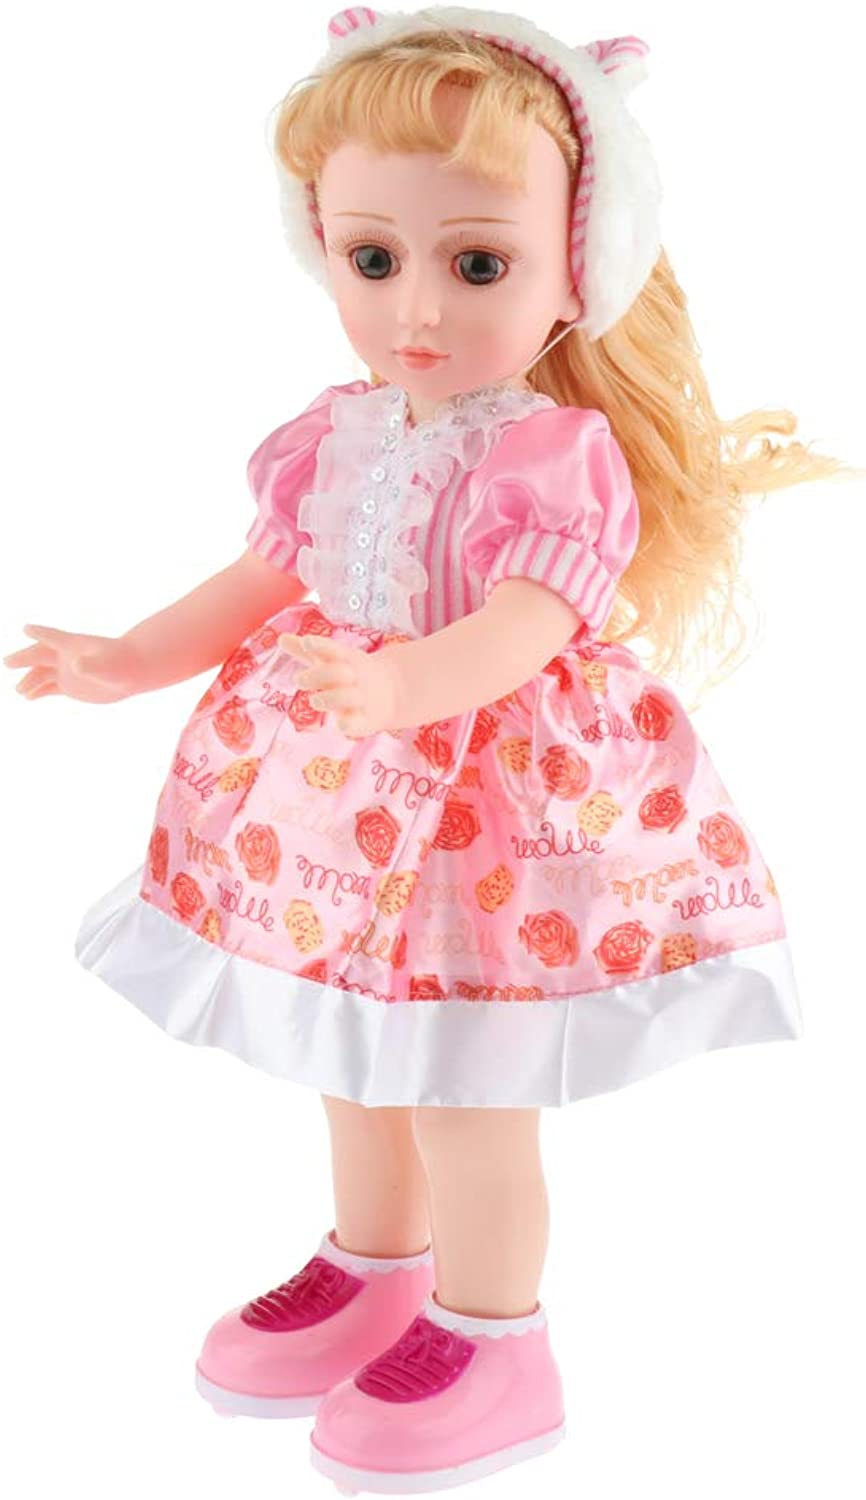 Fenteer Realistic Baby Doll Lifelike Expressions Movements with Doll Dress Toy for Girls - E